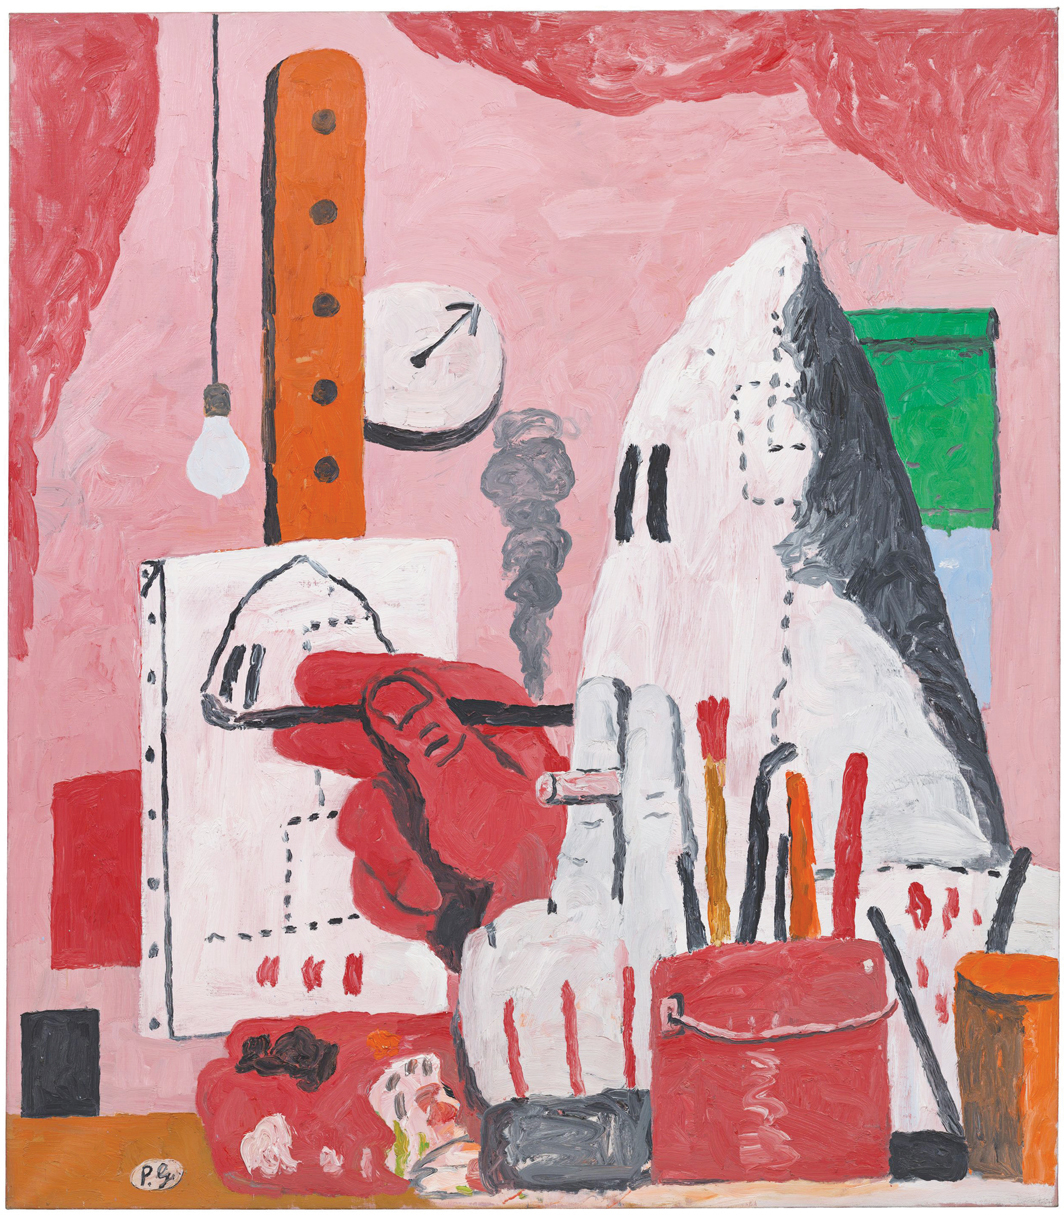 "Philip Guston, The Studio, 1969, oil on canvas, 73 1/4 × 71"". © The Estate of Philip Guston."